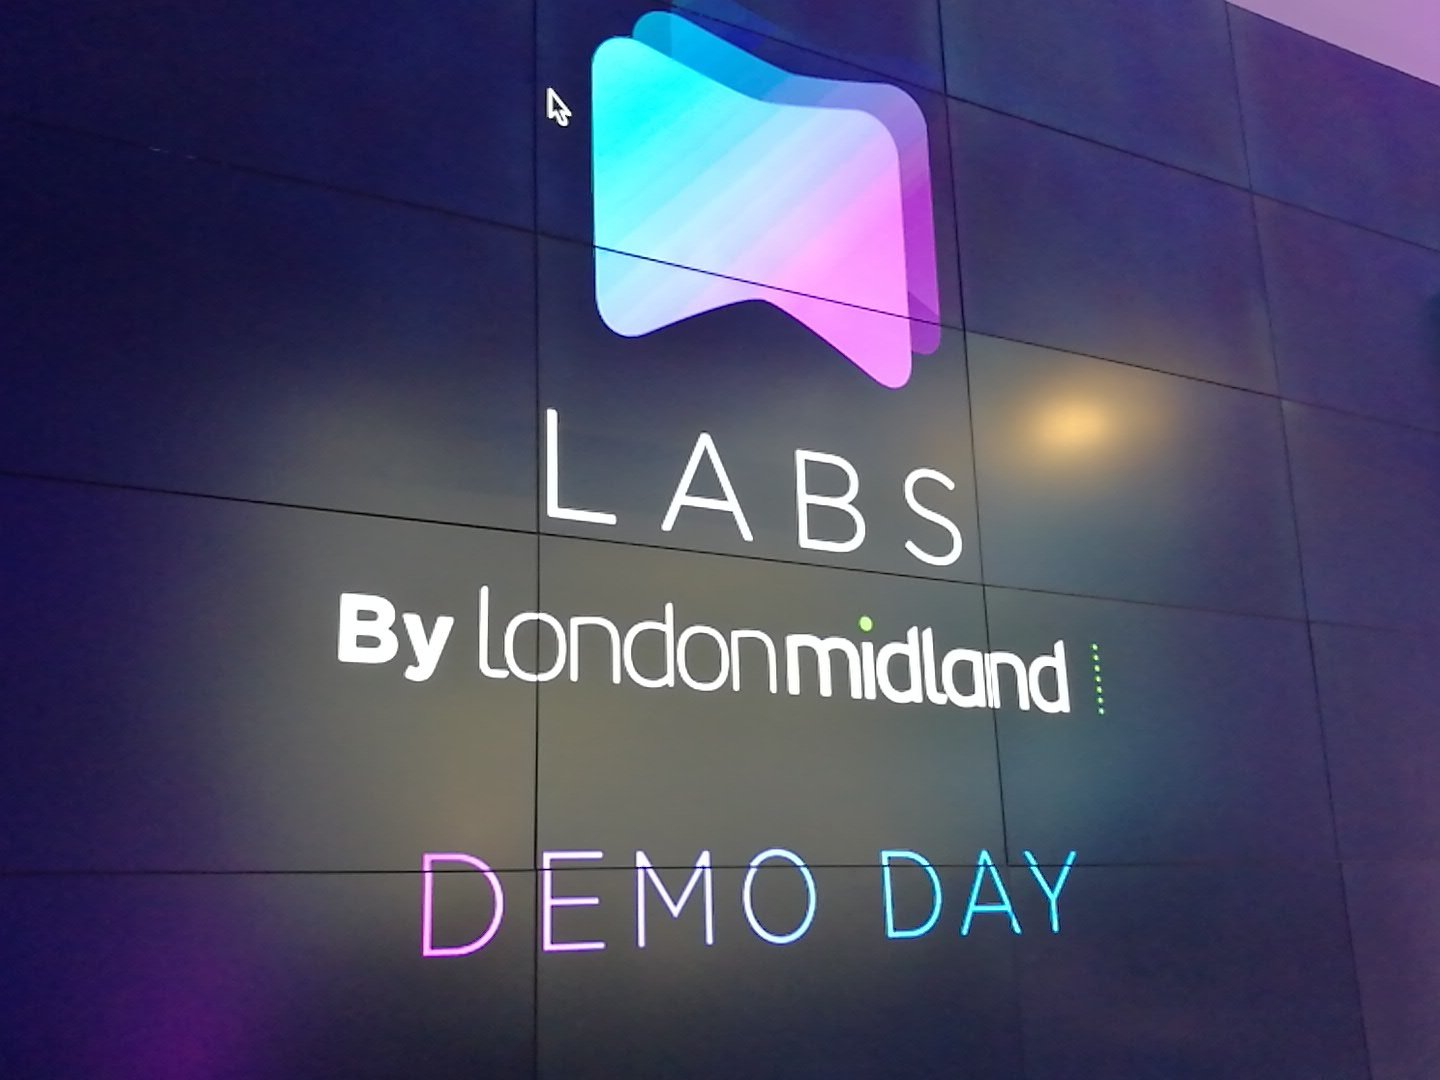 I've been in 'training' for tonight 😁 #lmlabsdemo https://t.co/GsVEDrJTwN